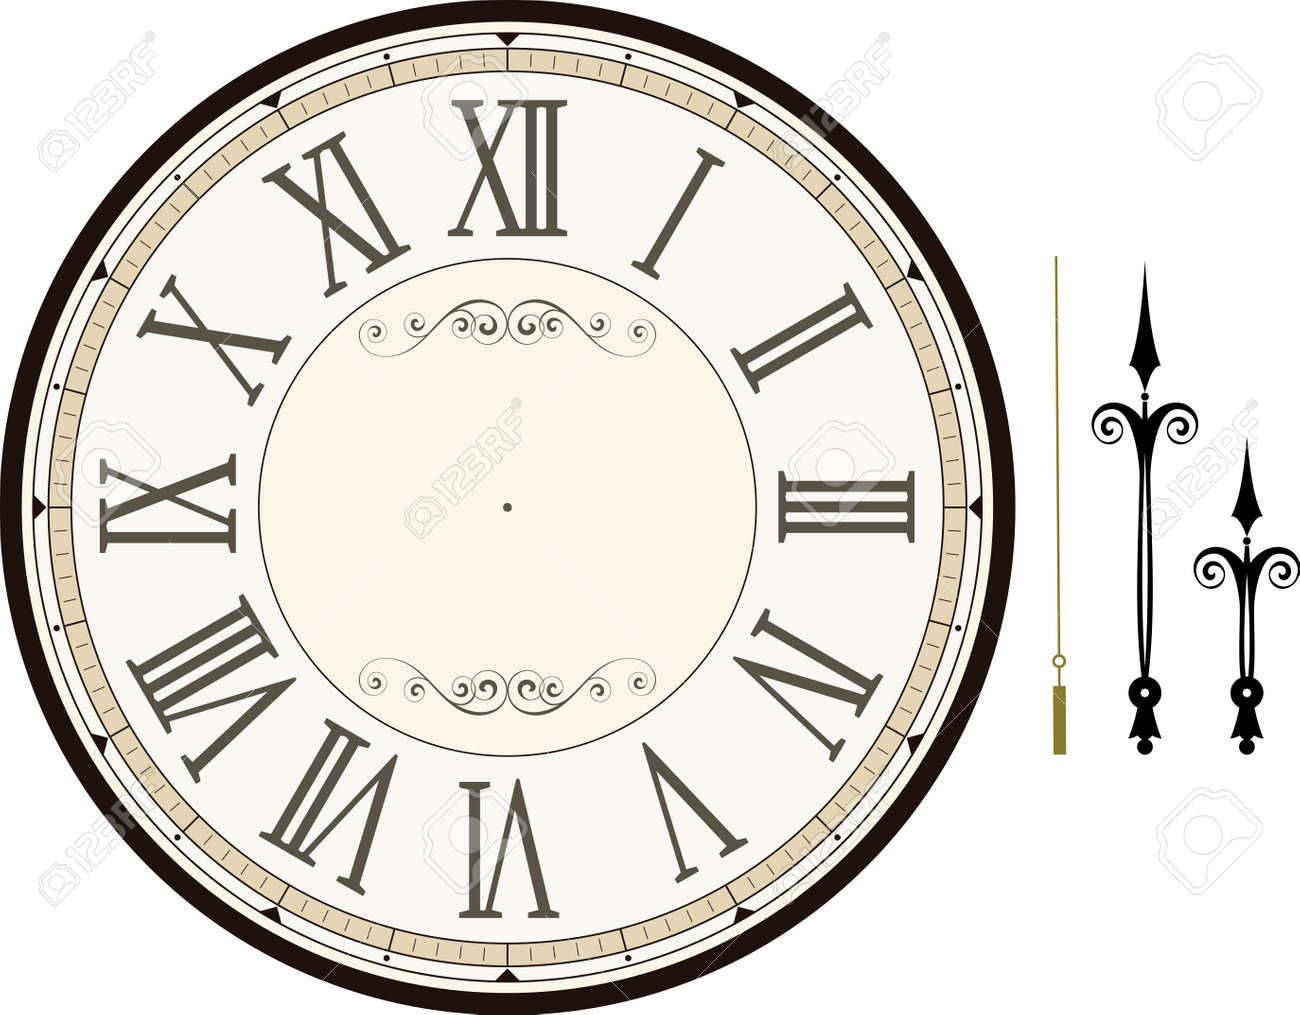 worksheet Clock Template With Hands vintage clock face template with hour minute and second hands to make your own time